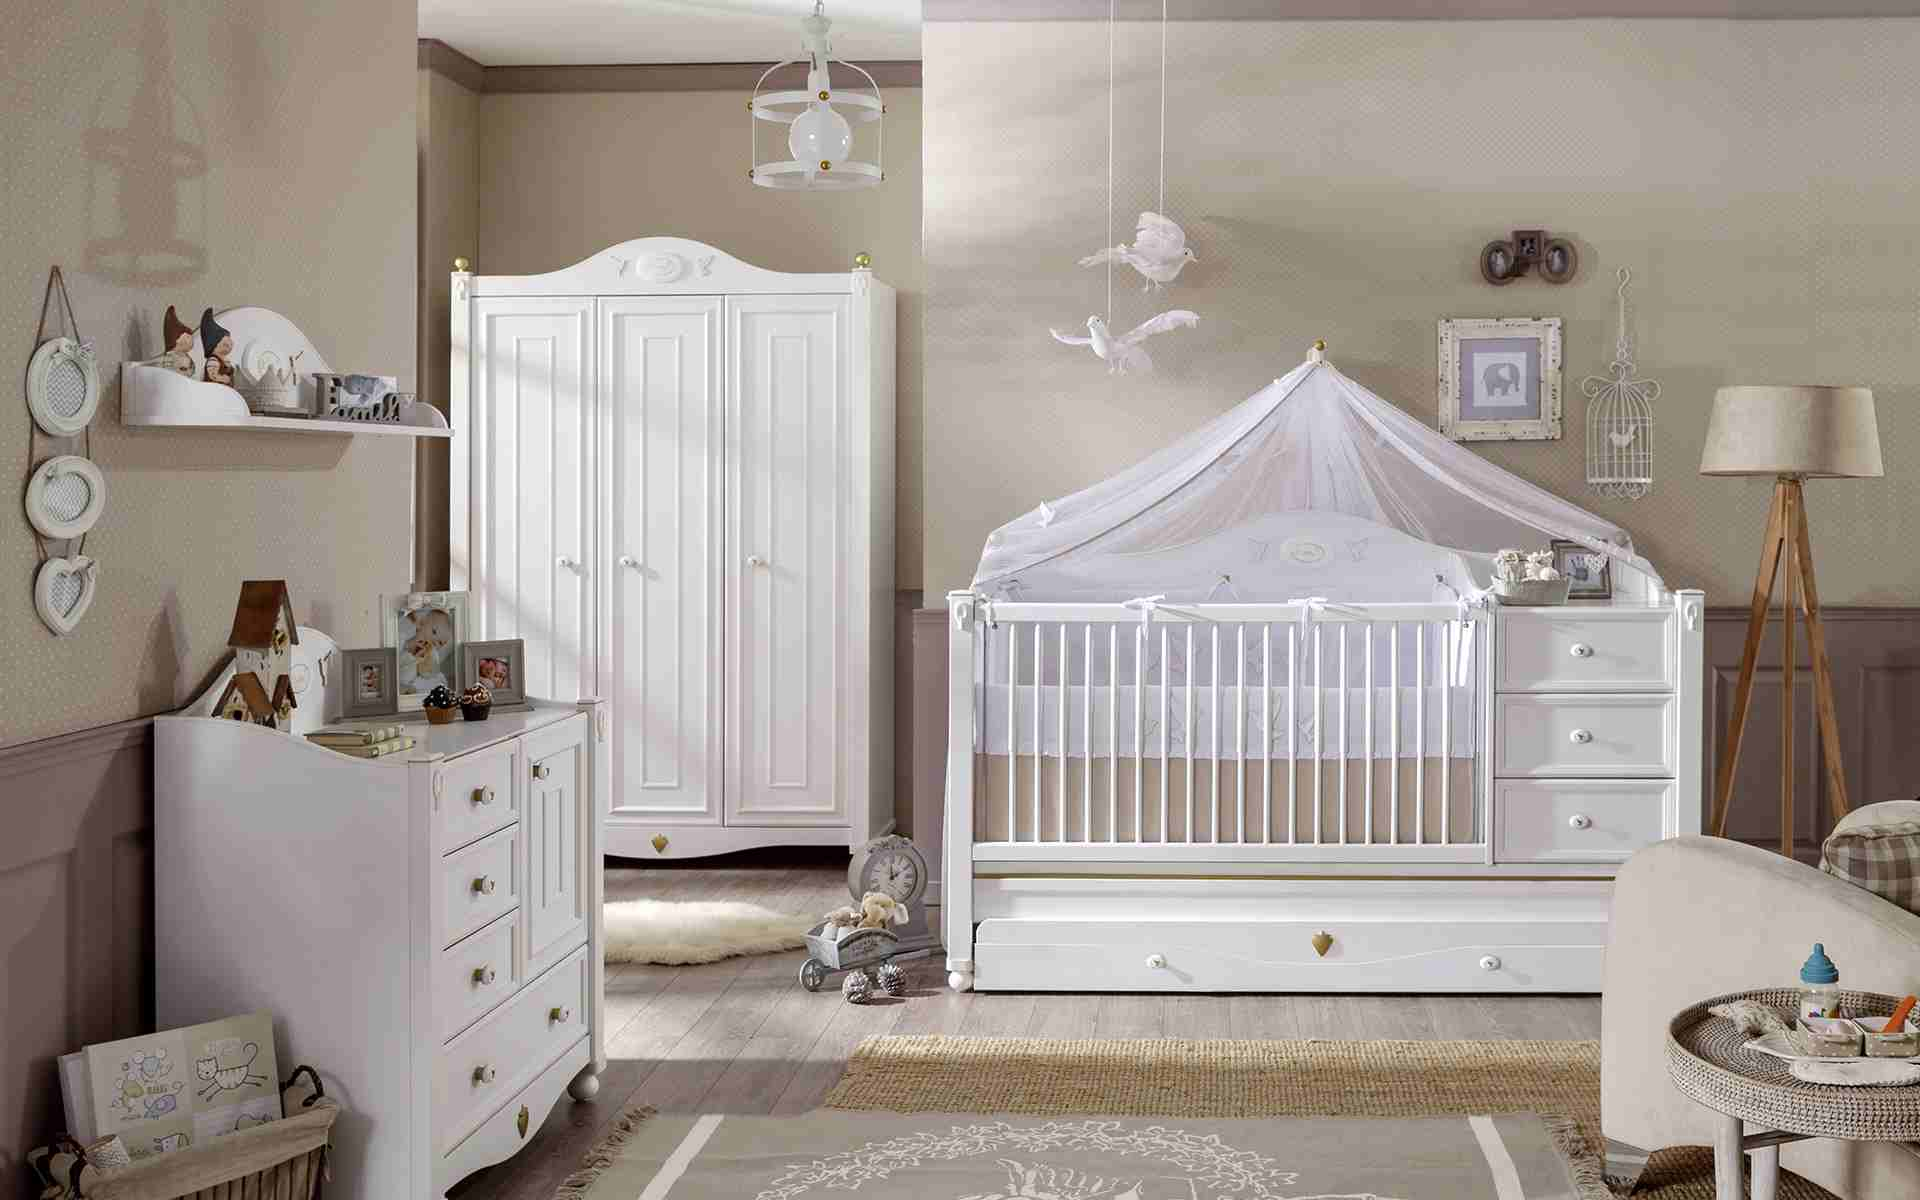 Baby girl room decoration 12 ideas, photos and tips   A spicy Boy